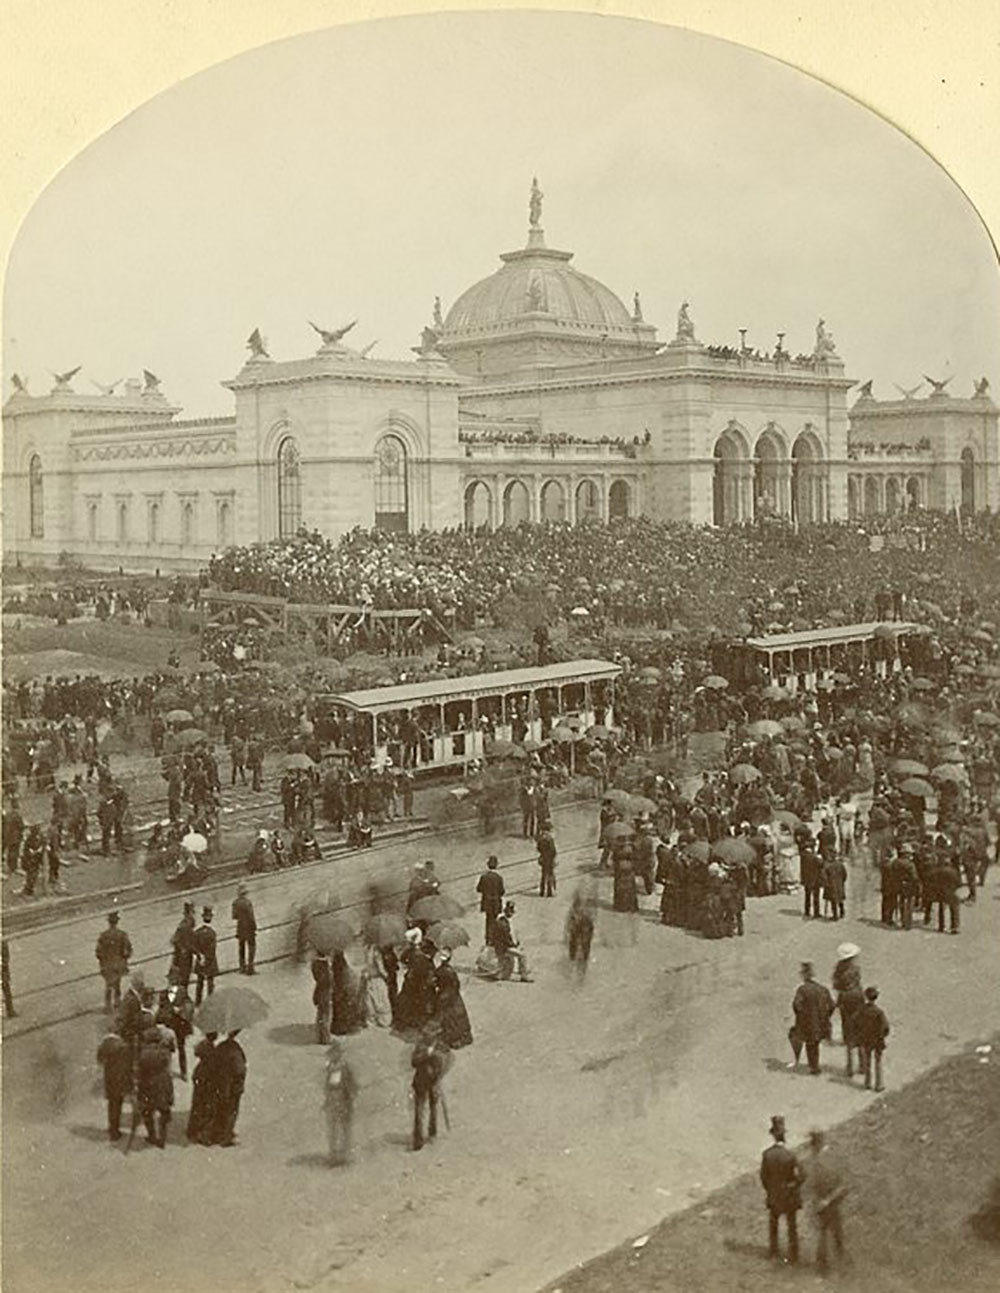 1876 Centennial Exposition in Philadelphia